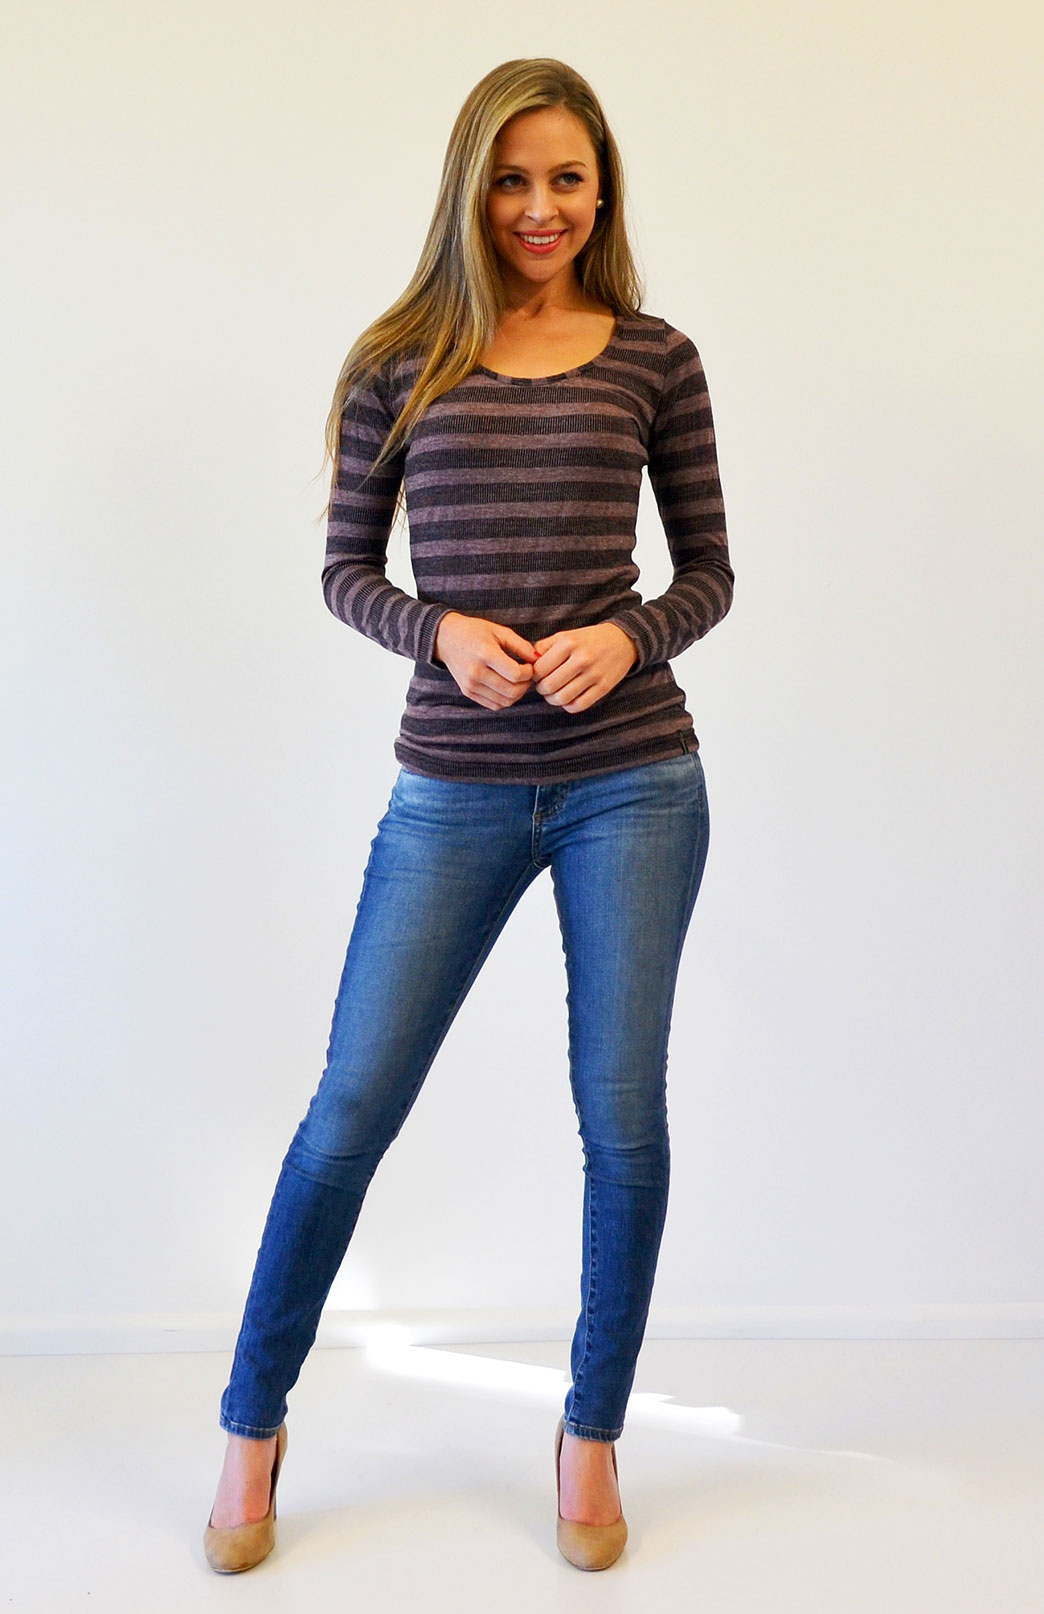 Scoop Neck Top - Patterned - Women's Raisin Stripe Merino Wool Blend Long Sleeved Scoop Neck Top - Smitten Merino Tasmania Australia